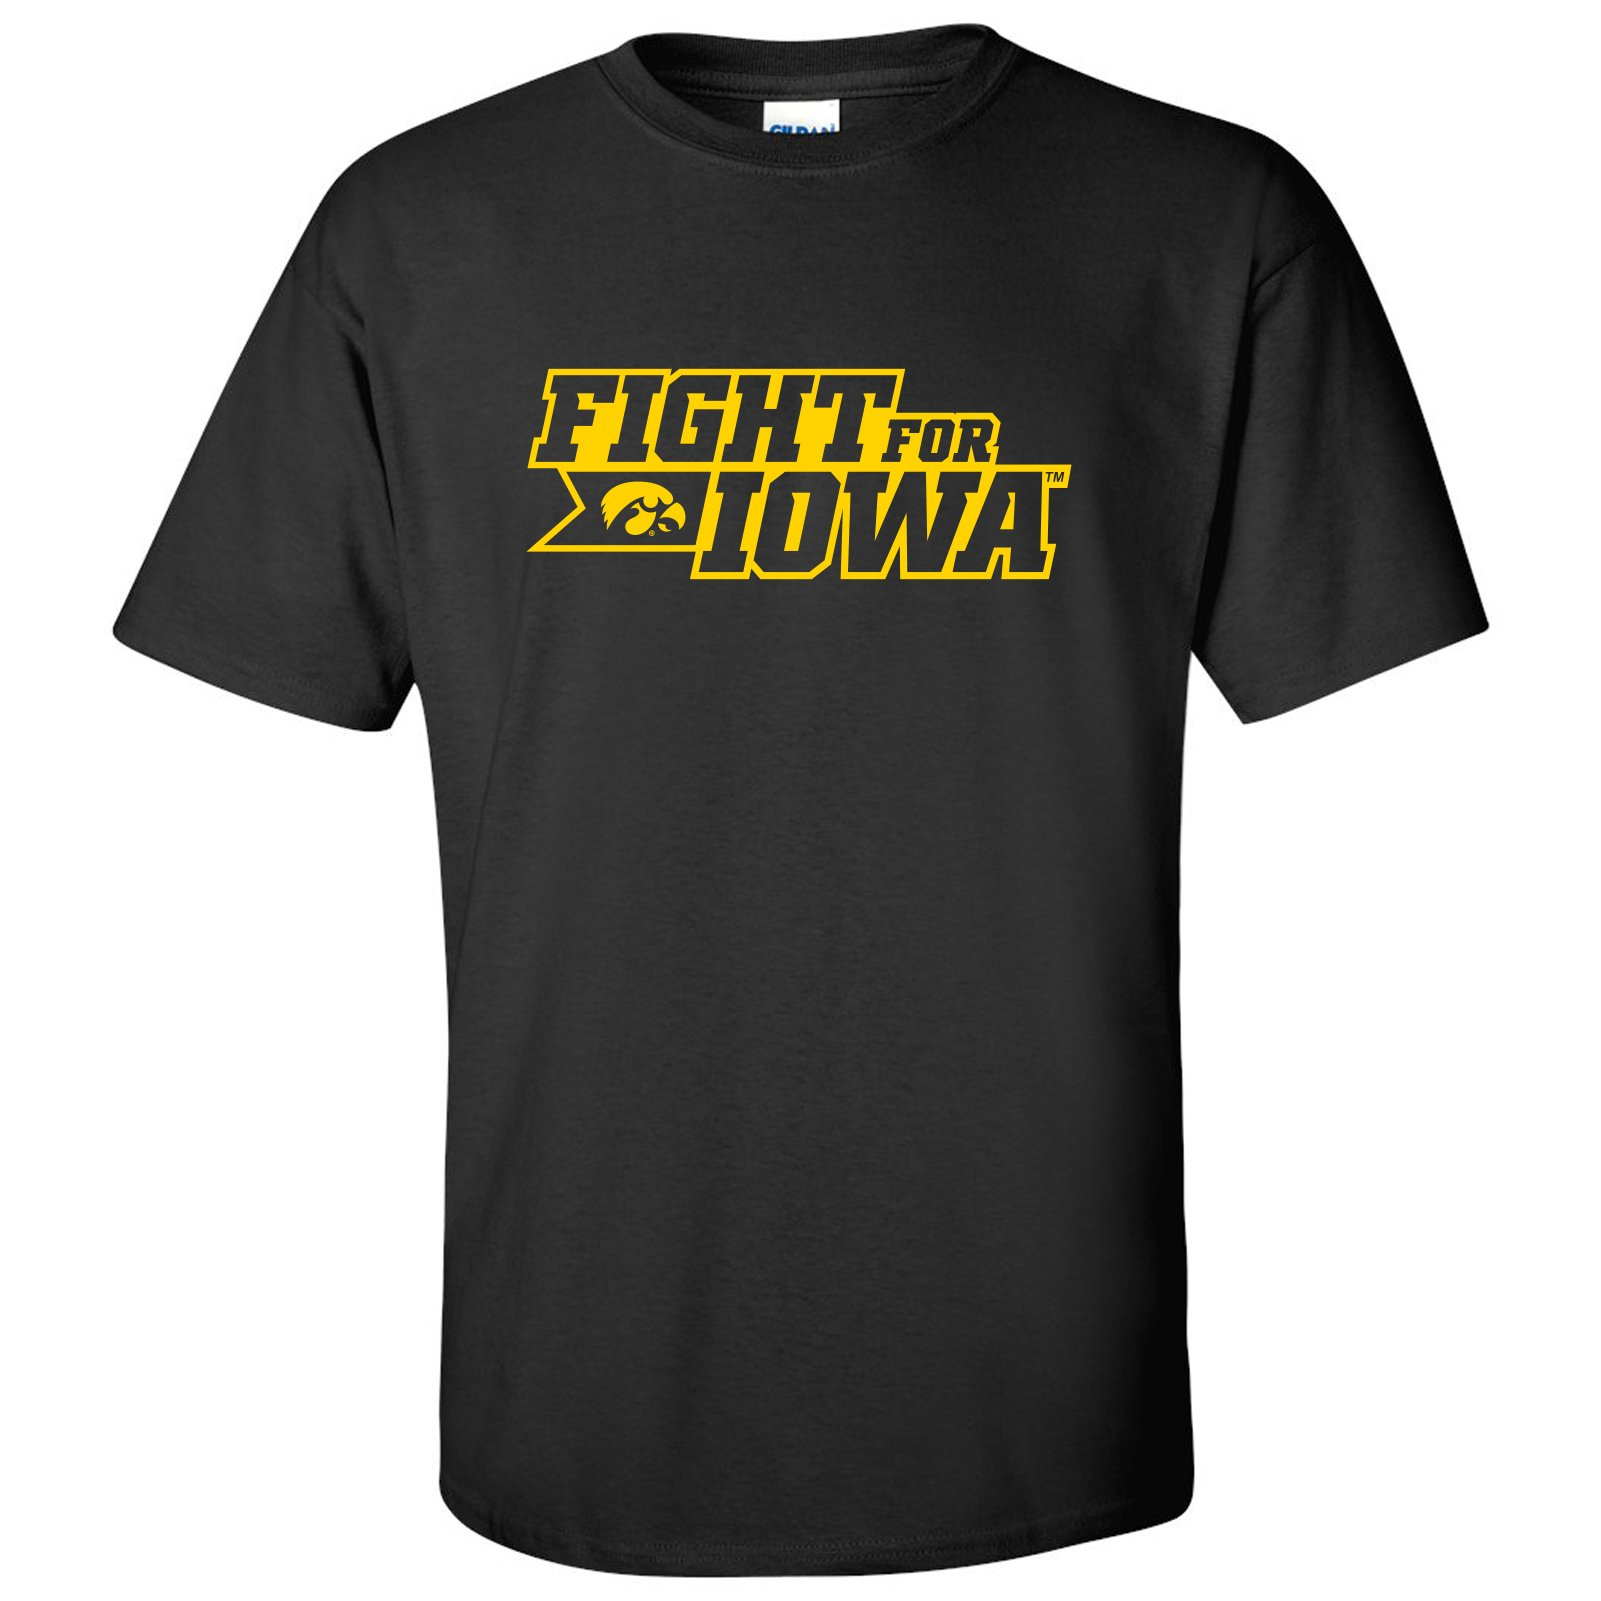 Iowa Hawkeyes Fight for Iowa Basic Cotton T-Shirt - Small - Black